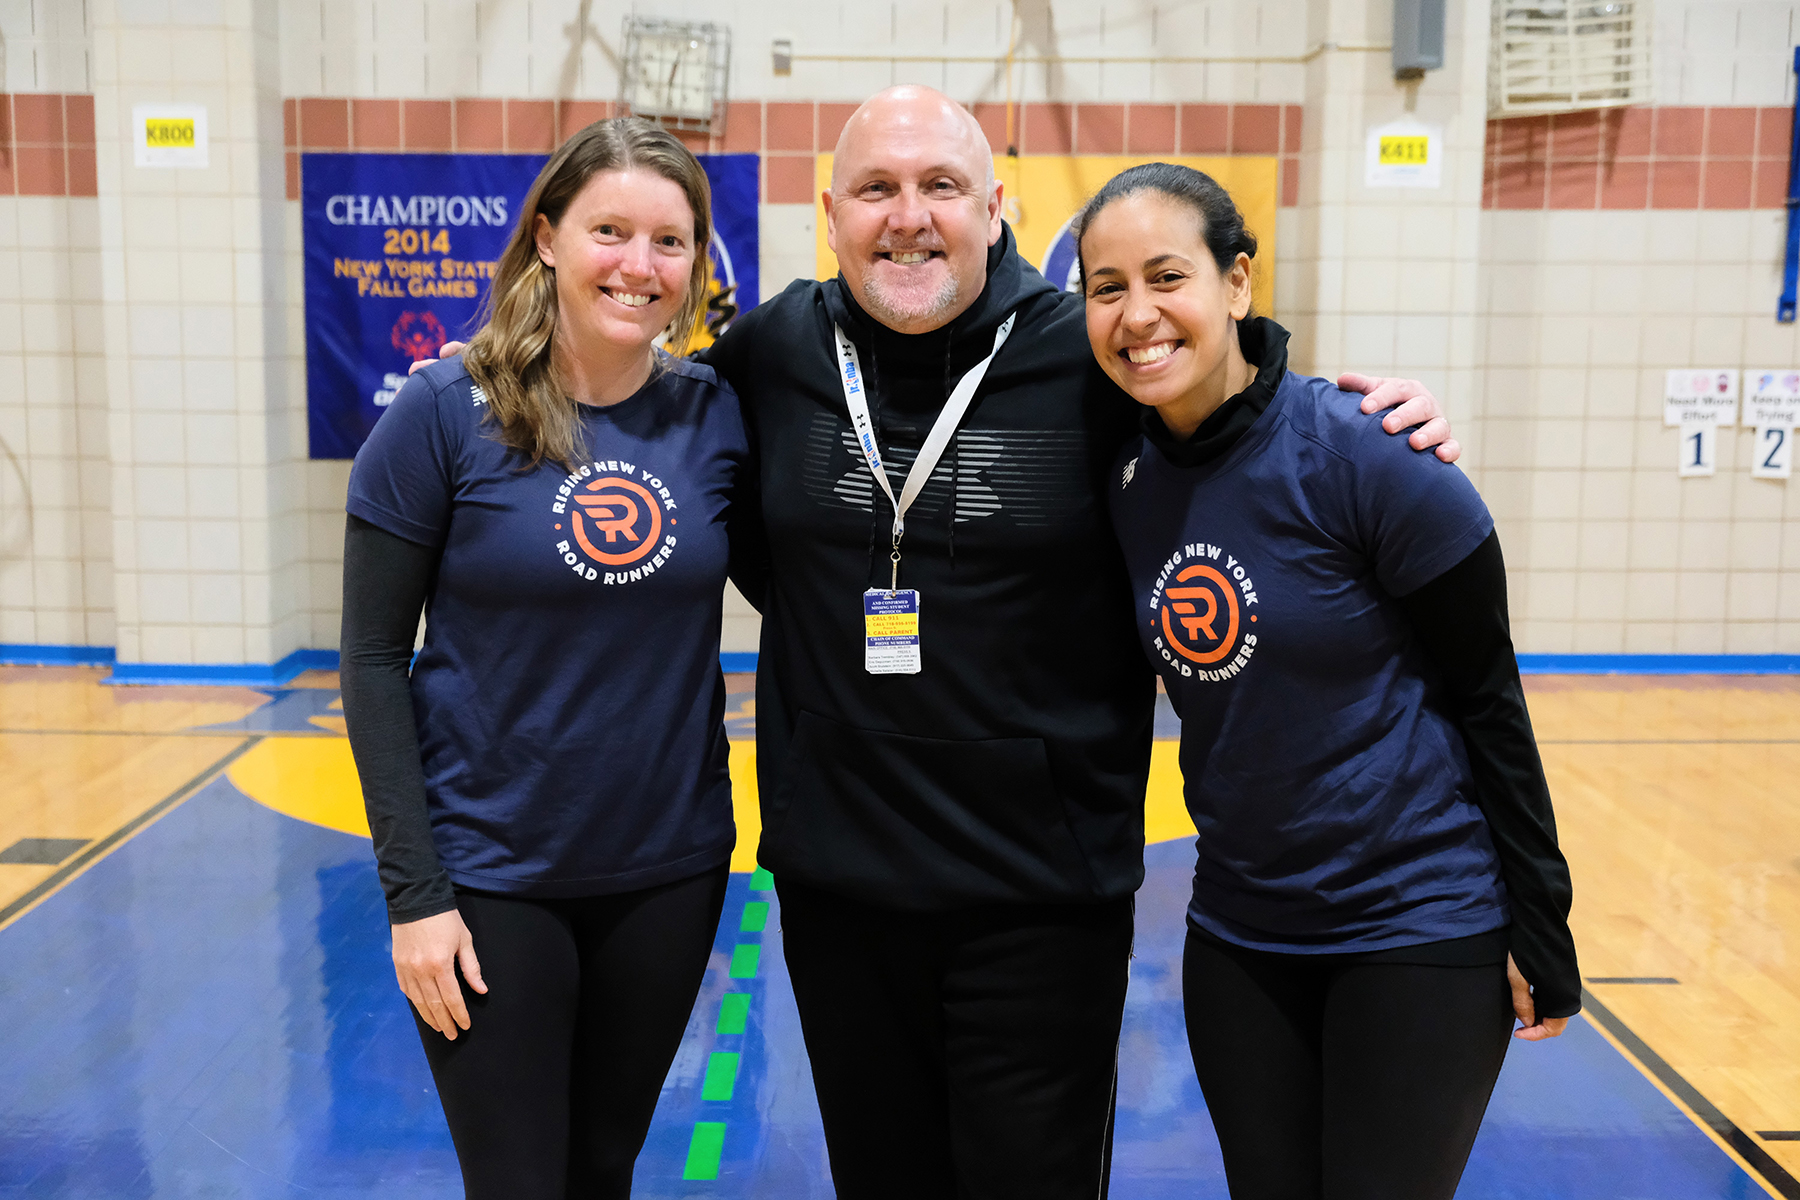 2019 Big Apple Award winner Doug Rebecca with NYRR's Caitlin Francisco and Lydia Gonzalez